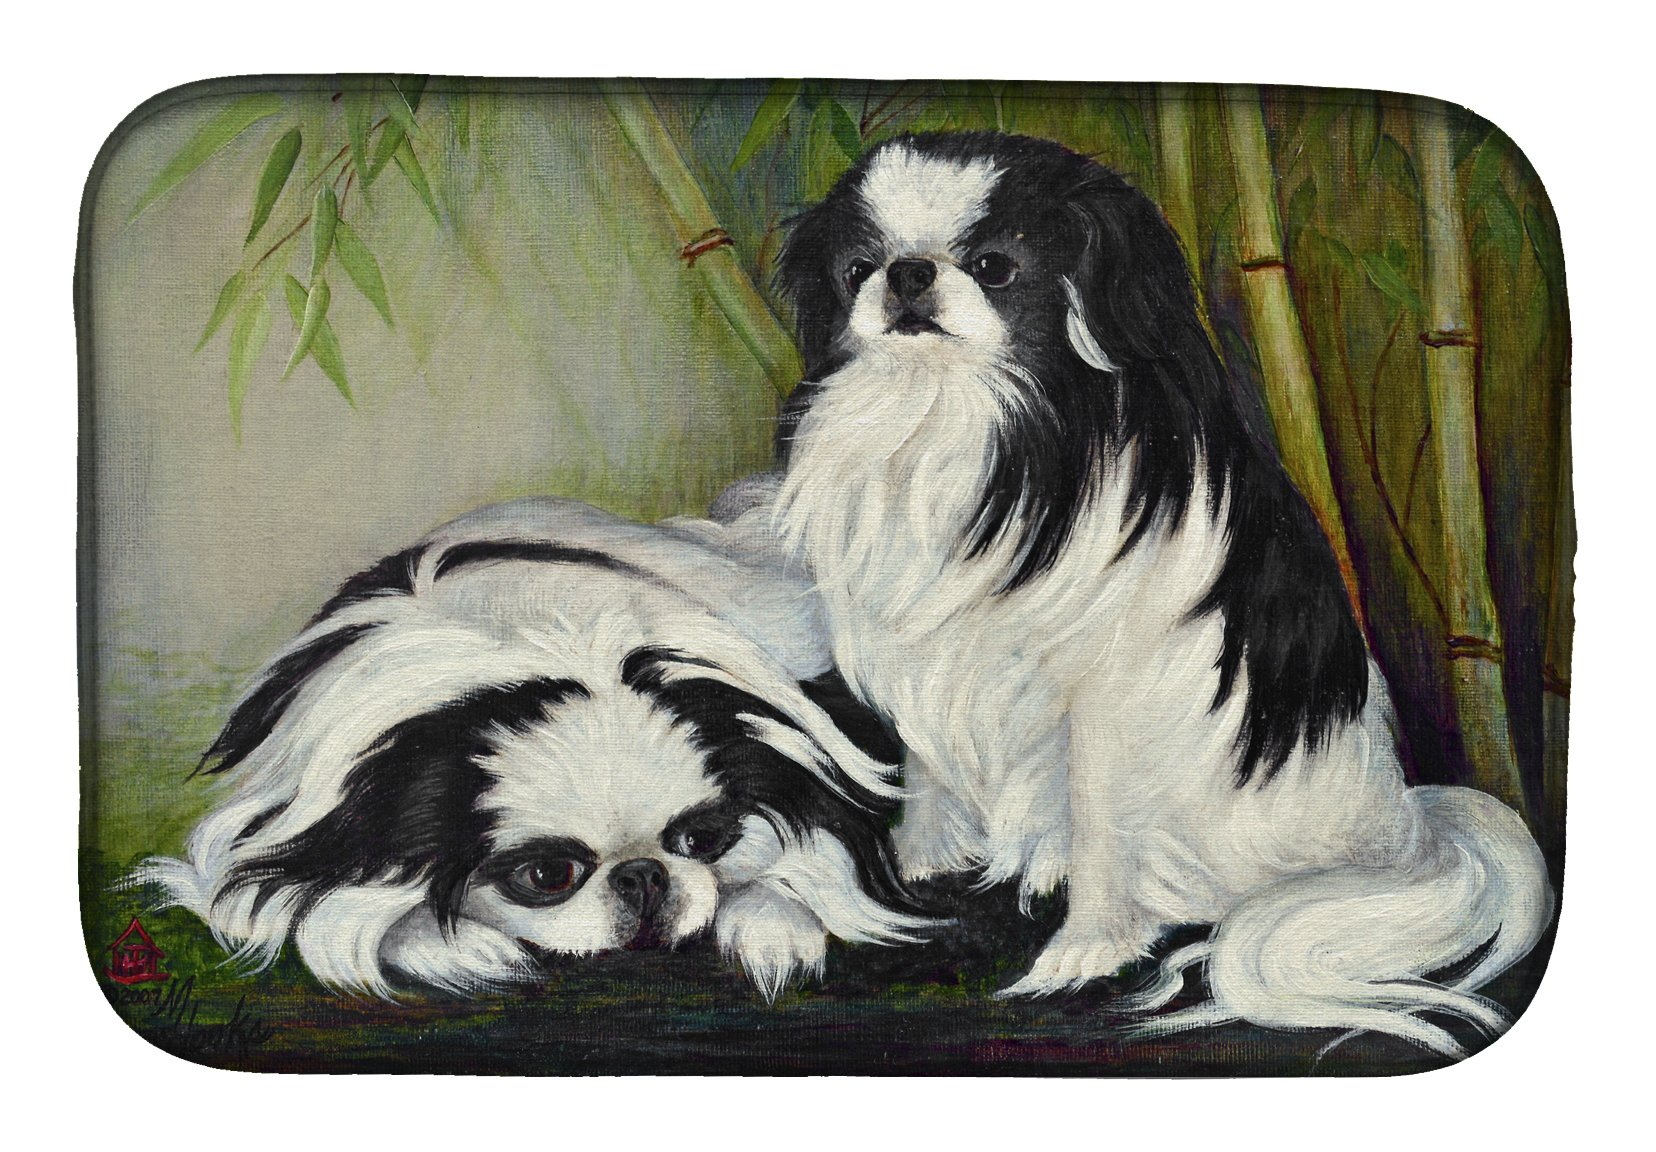 Japanese Chin Bamboo Garden Dish Drying Mat MH1044DDM by Caroline's Treasures